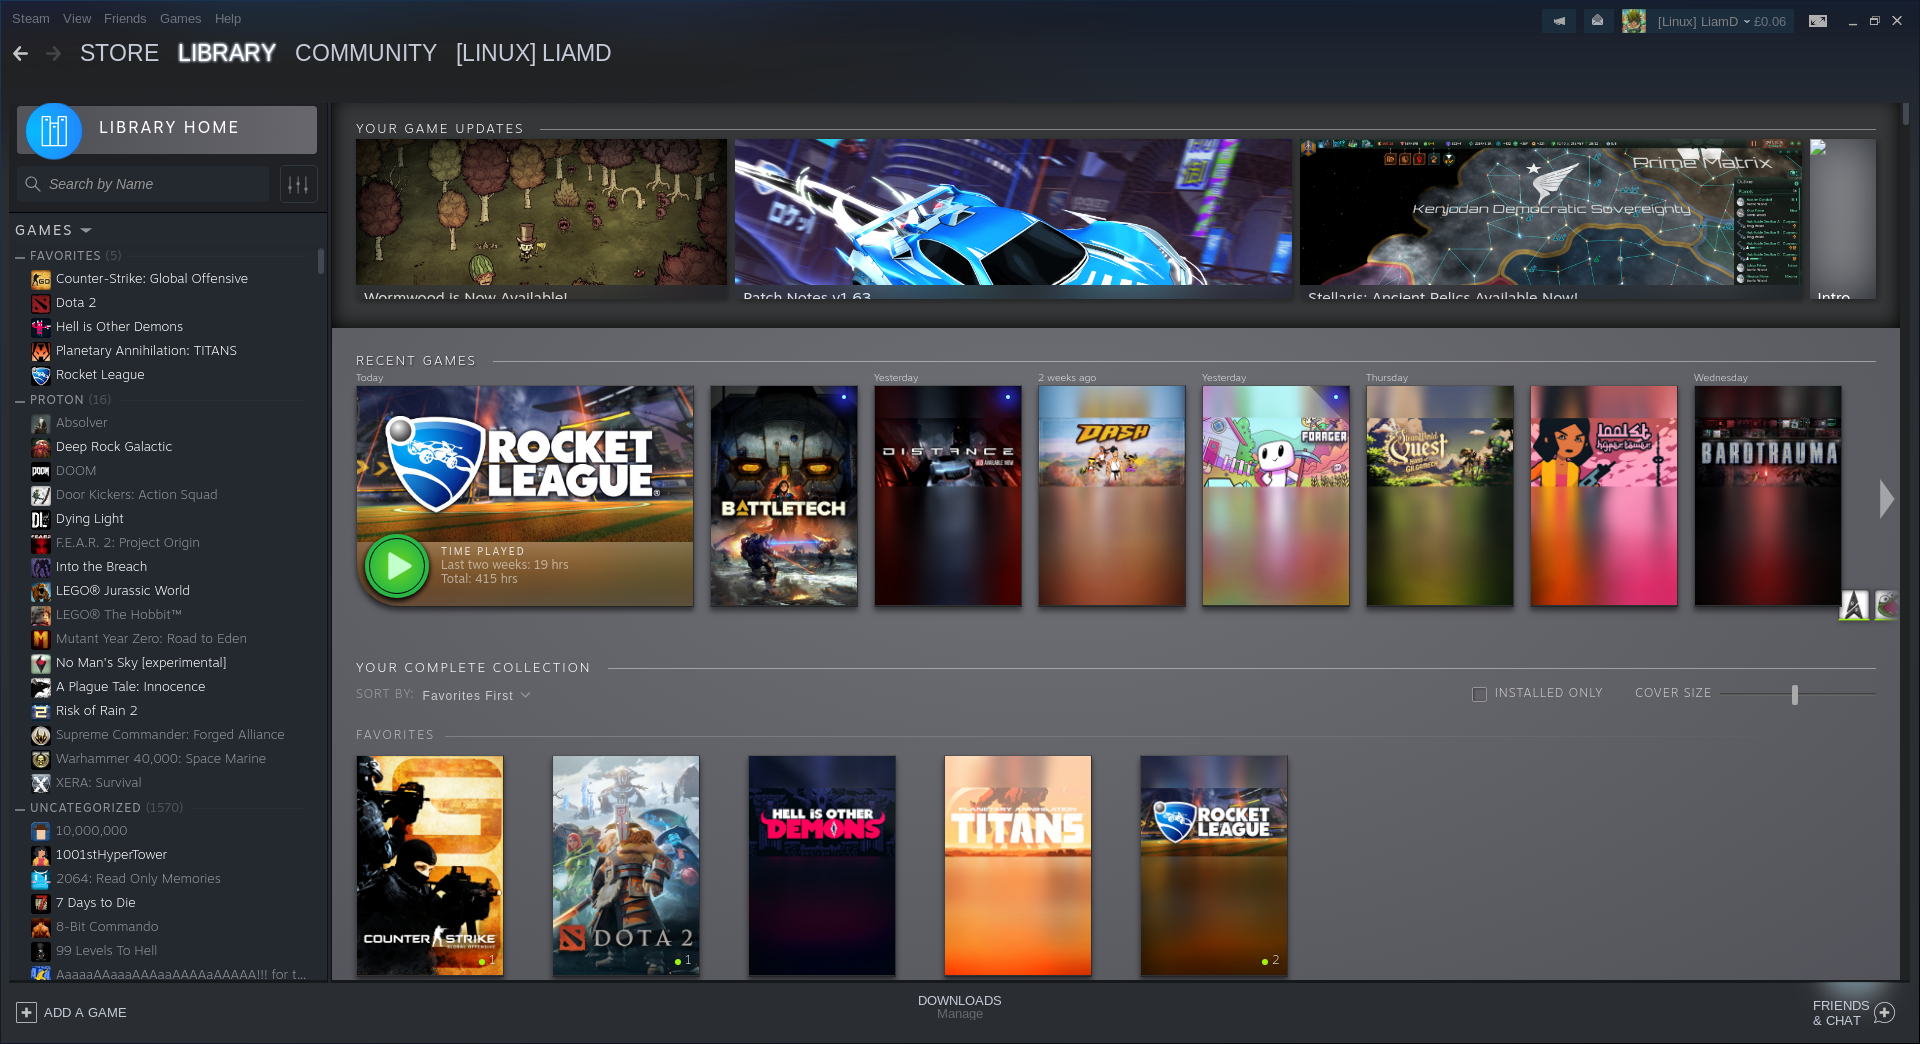 More shots of Steam's new Library design thanks to a leak